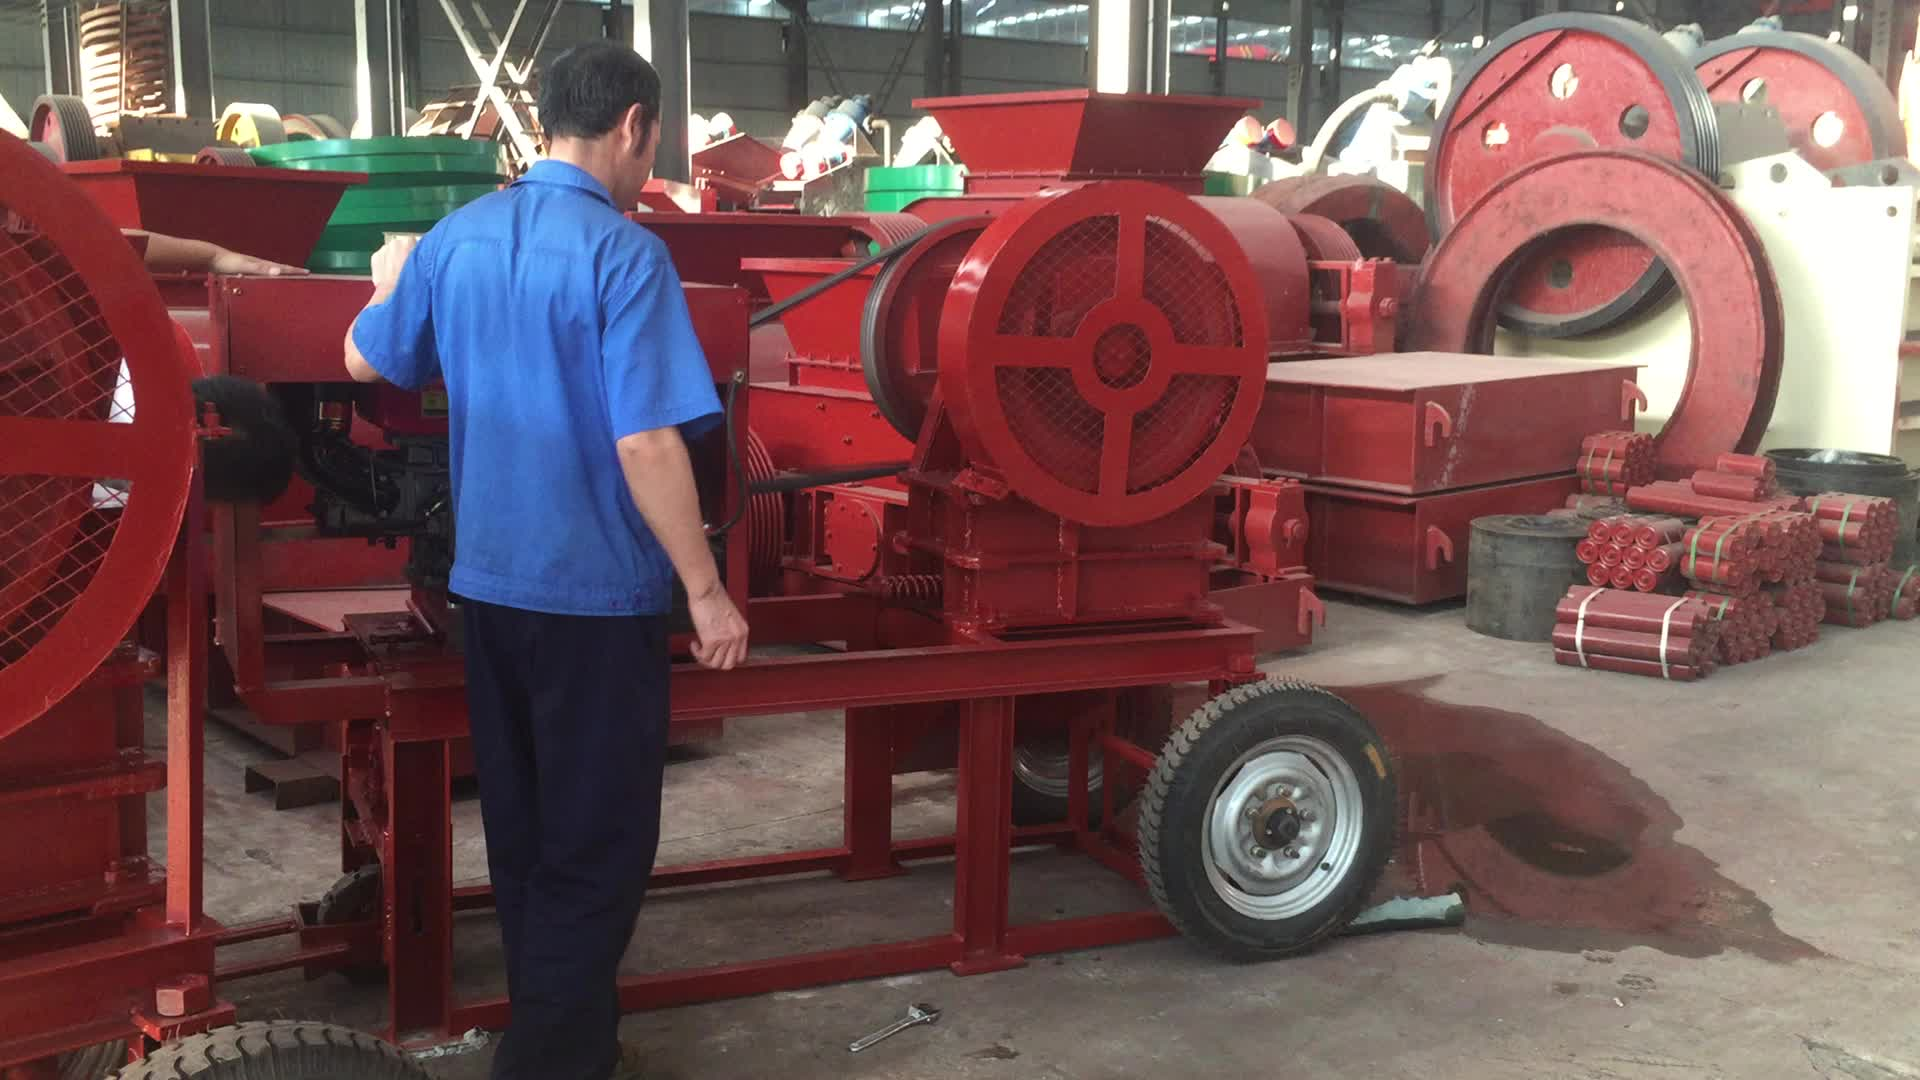 small diesel jaw crusher can be Portable stone crusher machinery small jaw crusher driven by diesel engine , find complete details about portable stone crusher machinery small jaw crusher driven by diesel engine,portable stone crusher,small jaw crusher for sale,portable jaw crusher diesel from crusher supplier or manufacturer-zhengzhou huahong machinery equipment co, ltd.